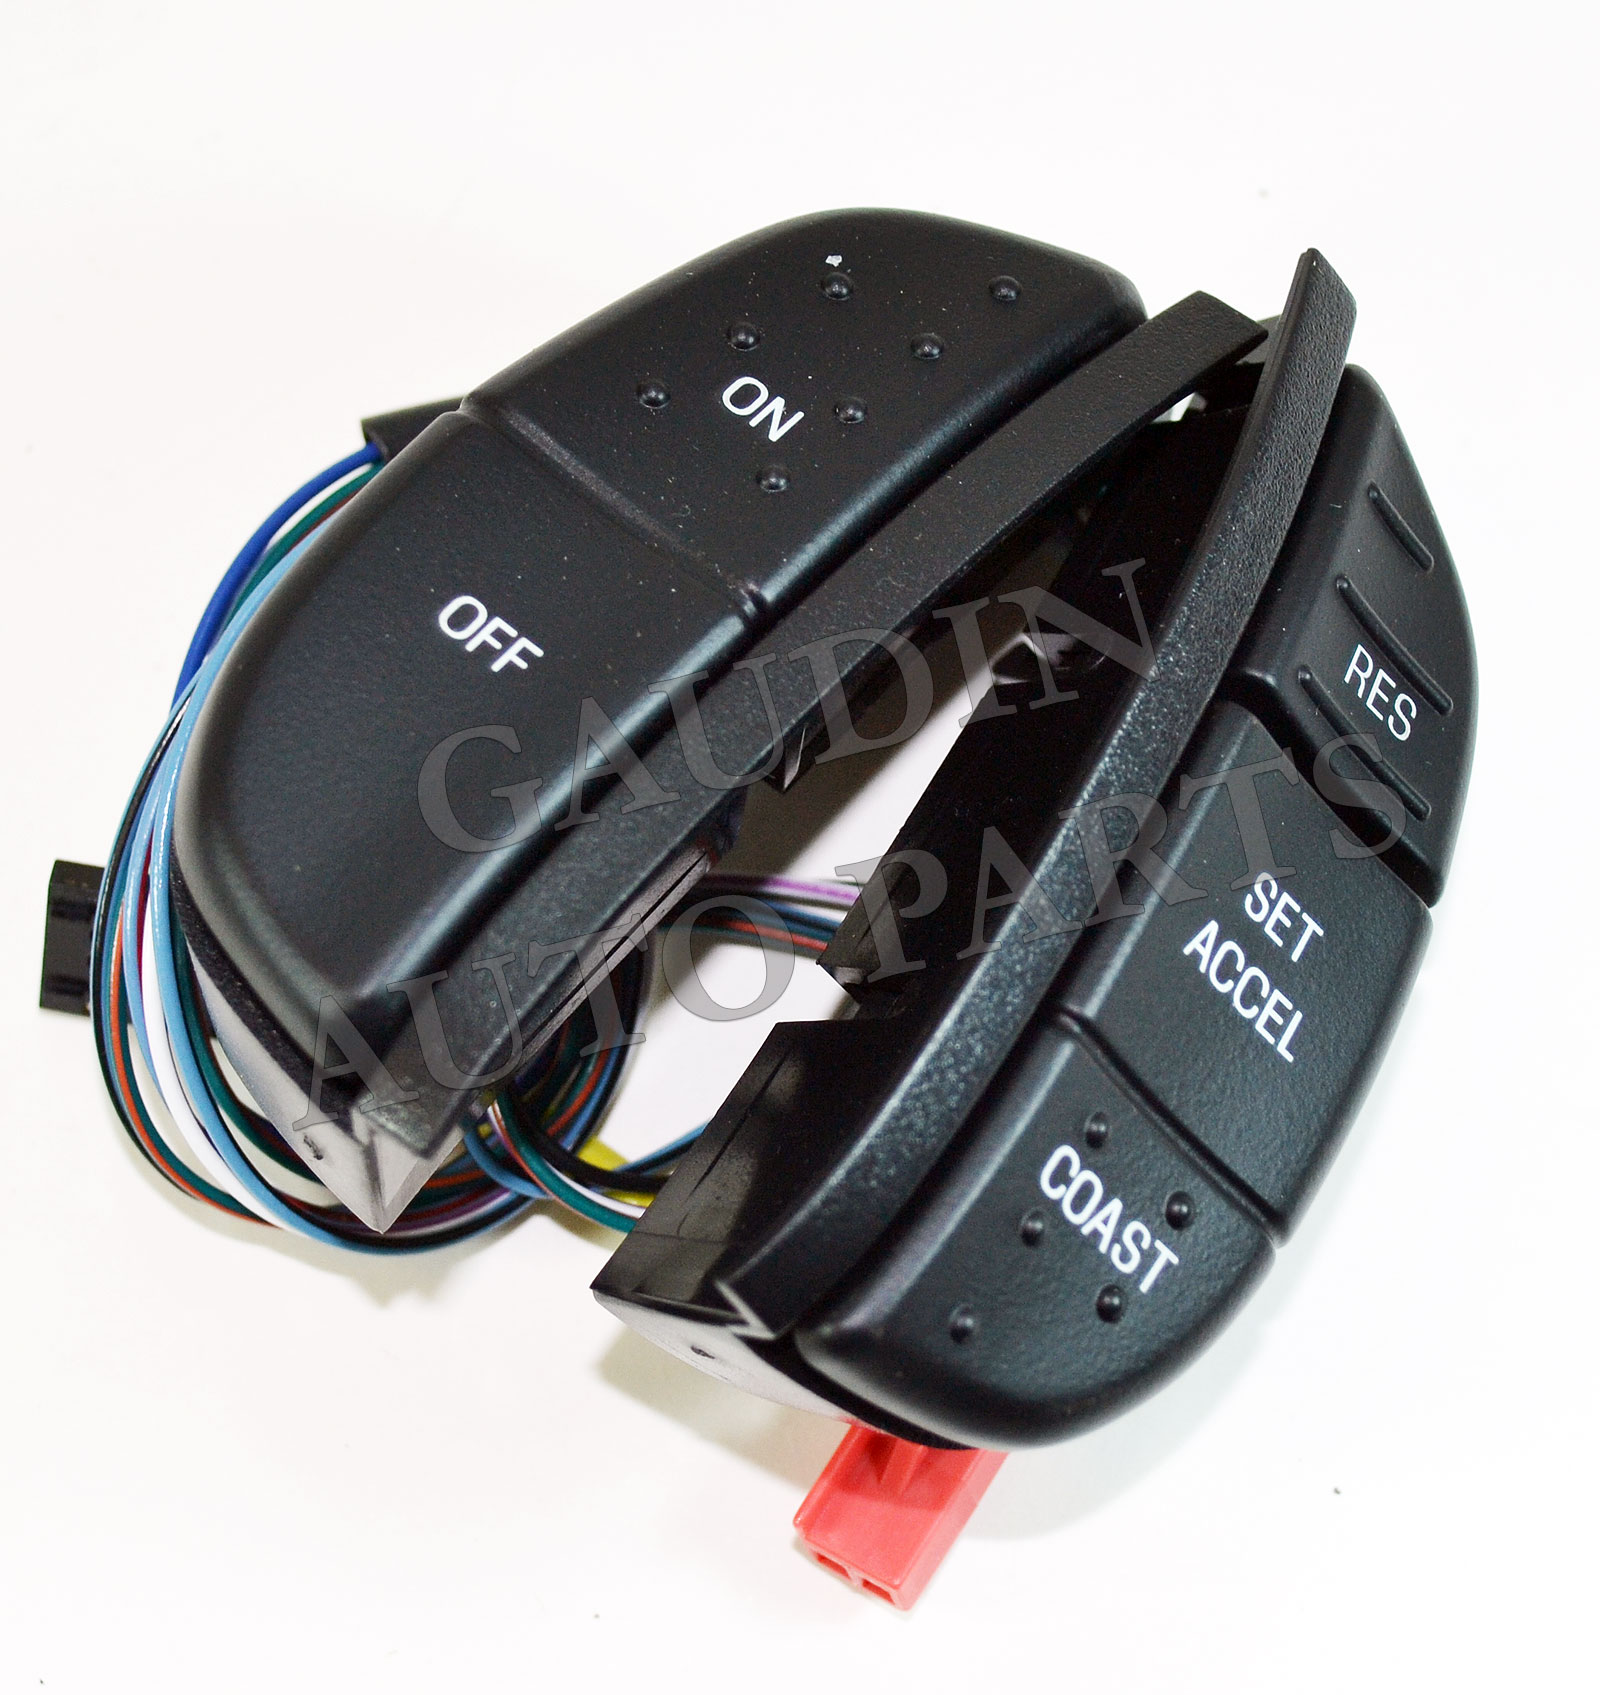 97 Ford Explorer Stereo Wiring Diagram Get Free Image About Wiring